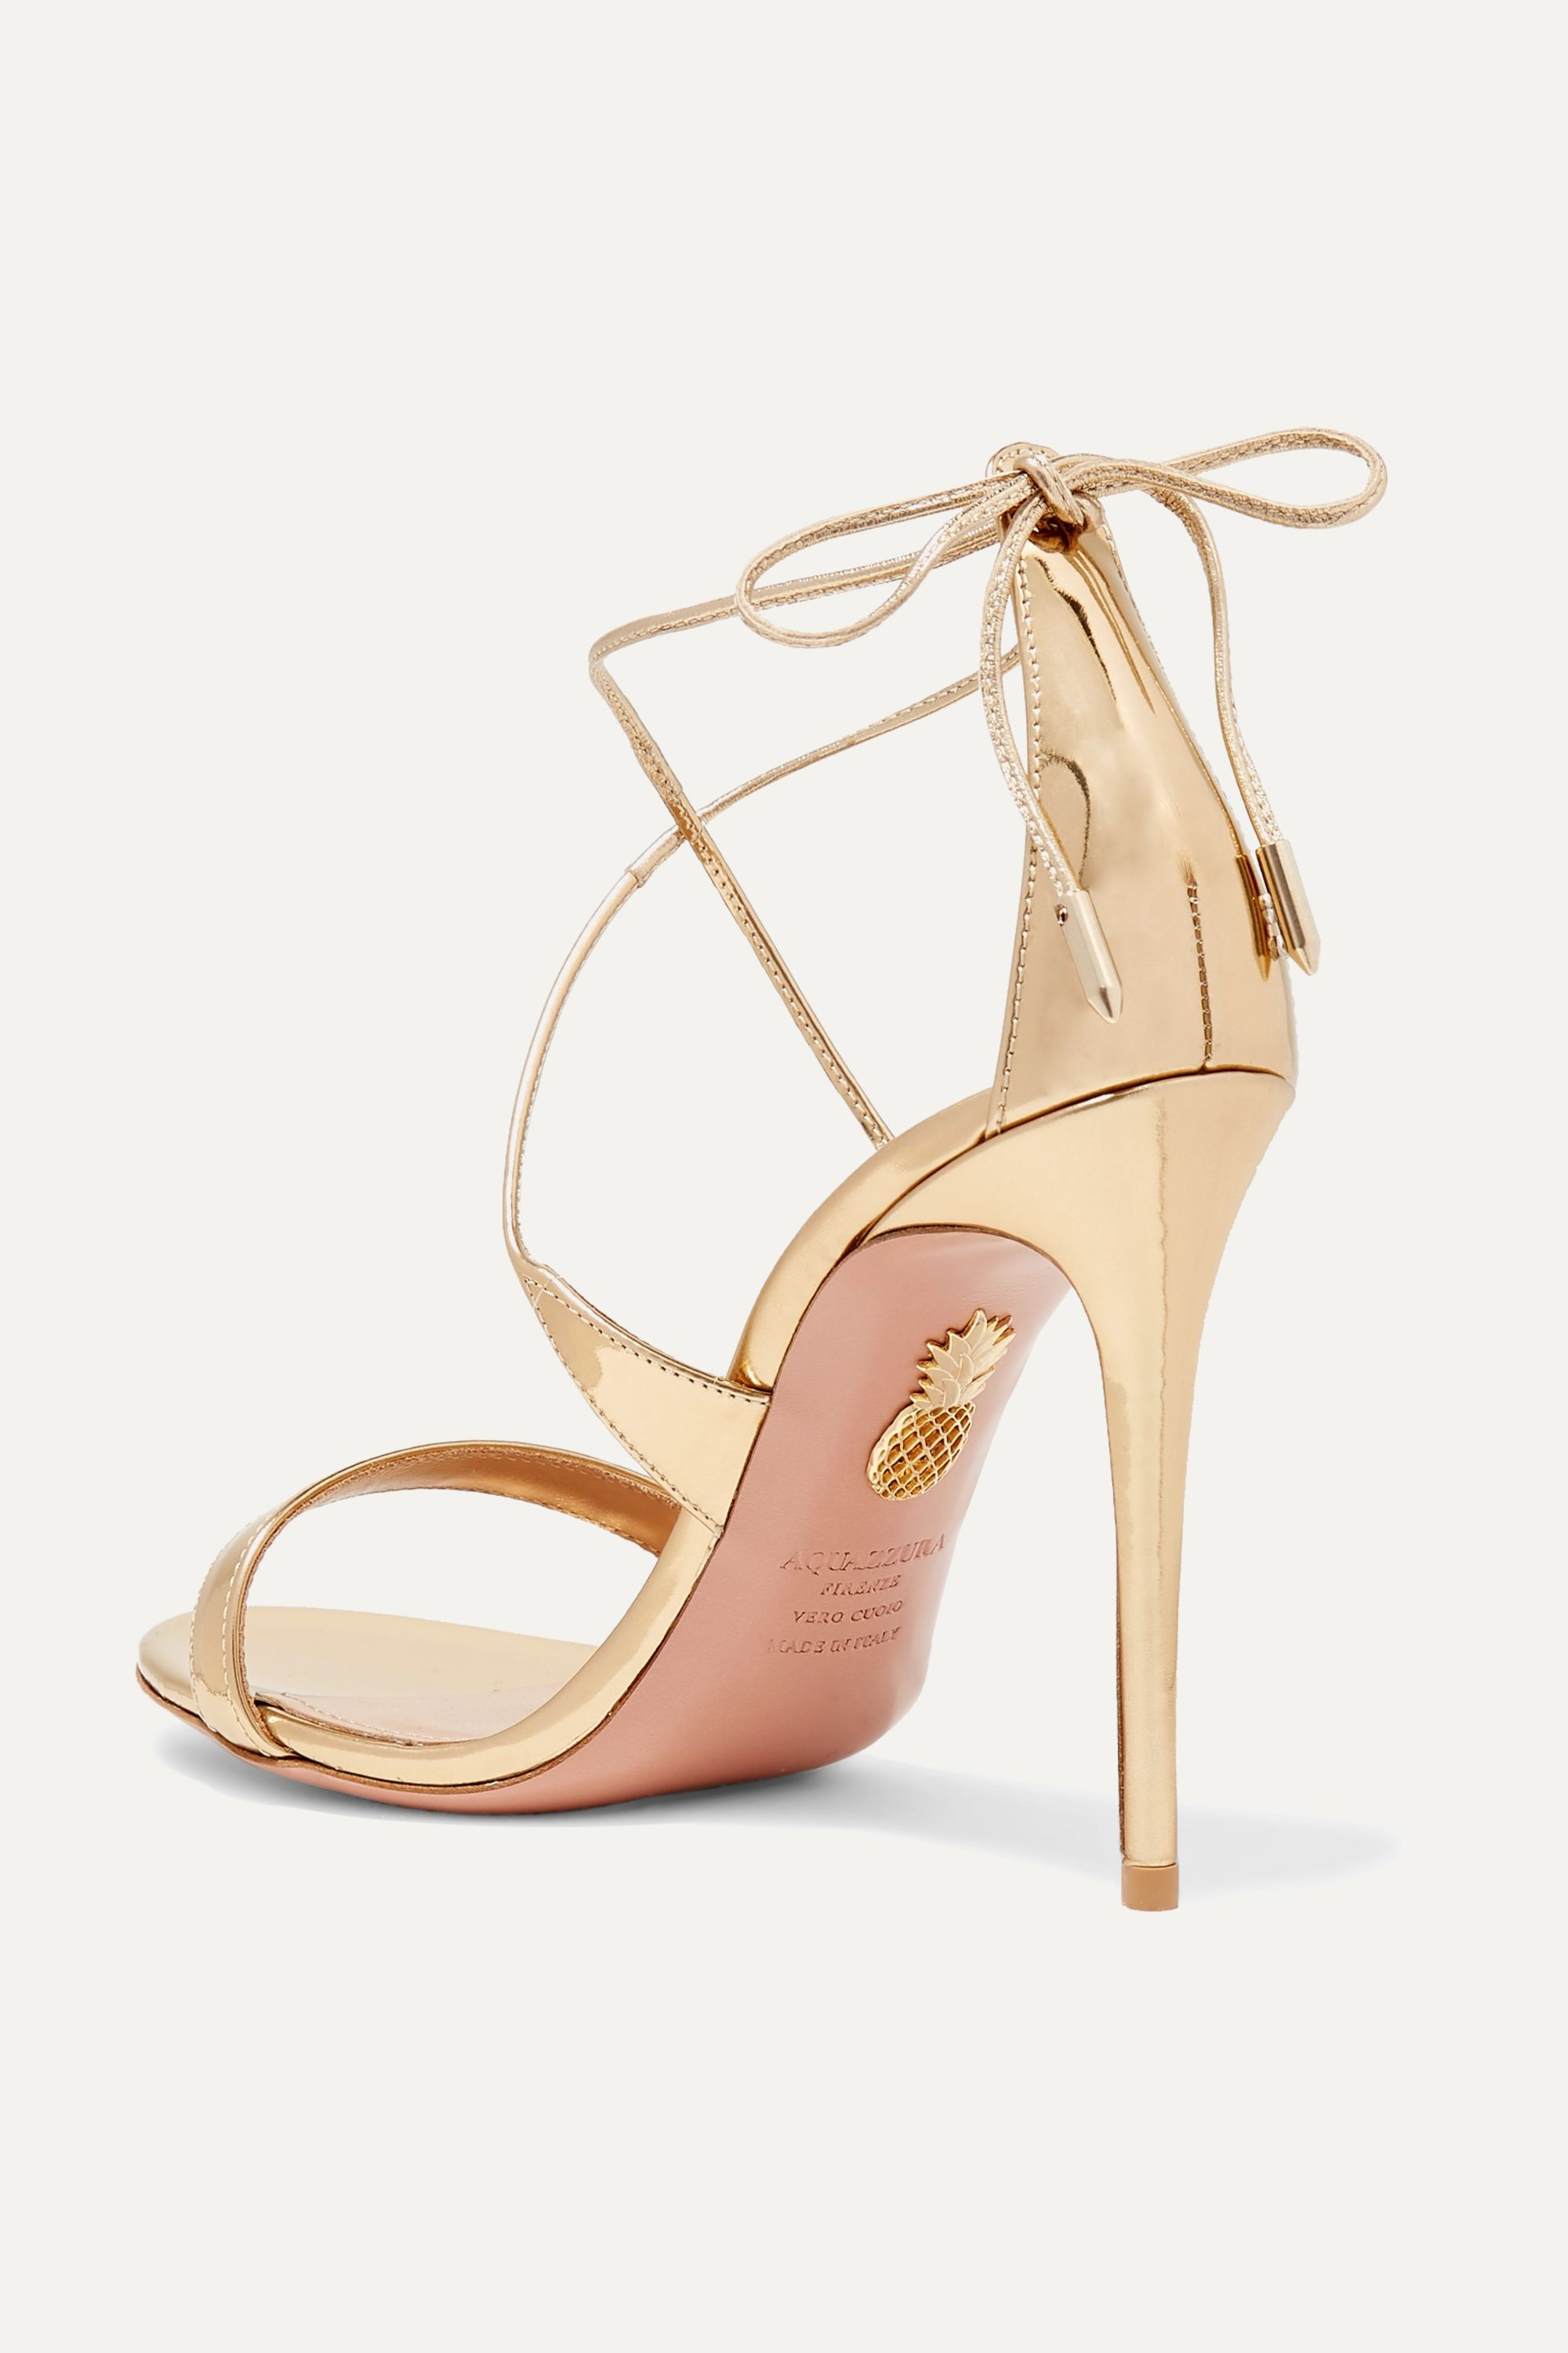 Aquazzura Linda 105 metallic leather sandals